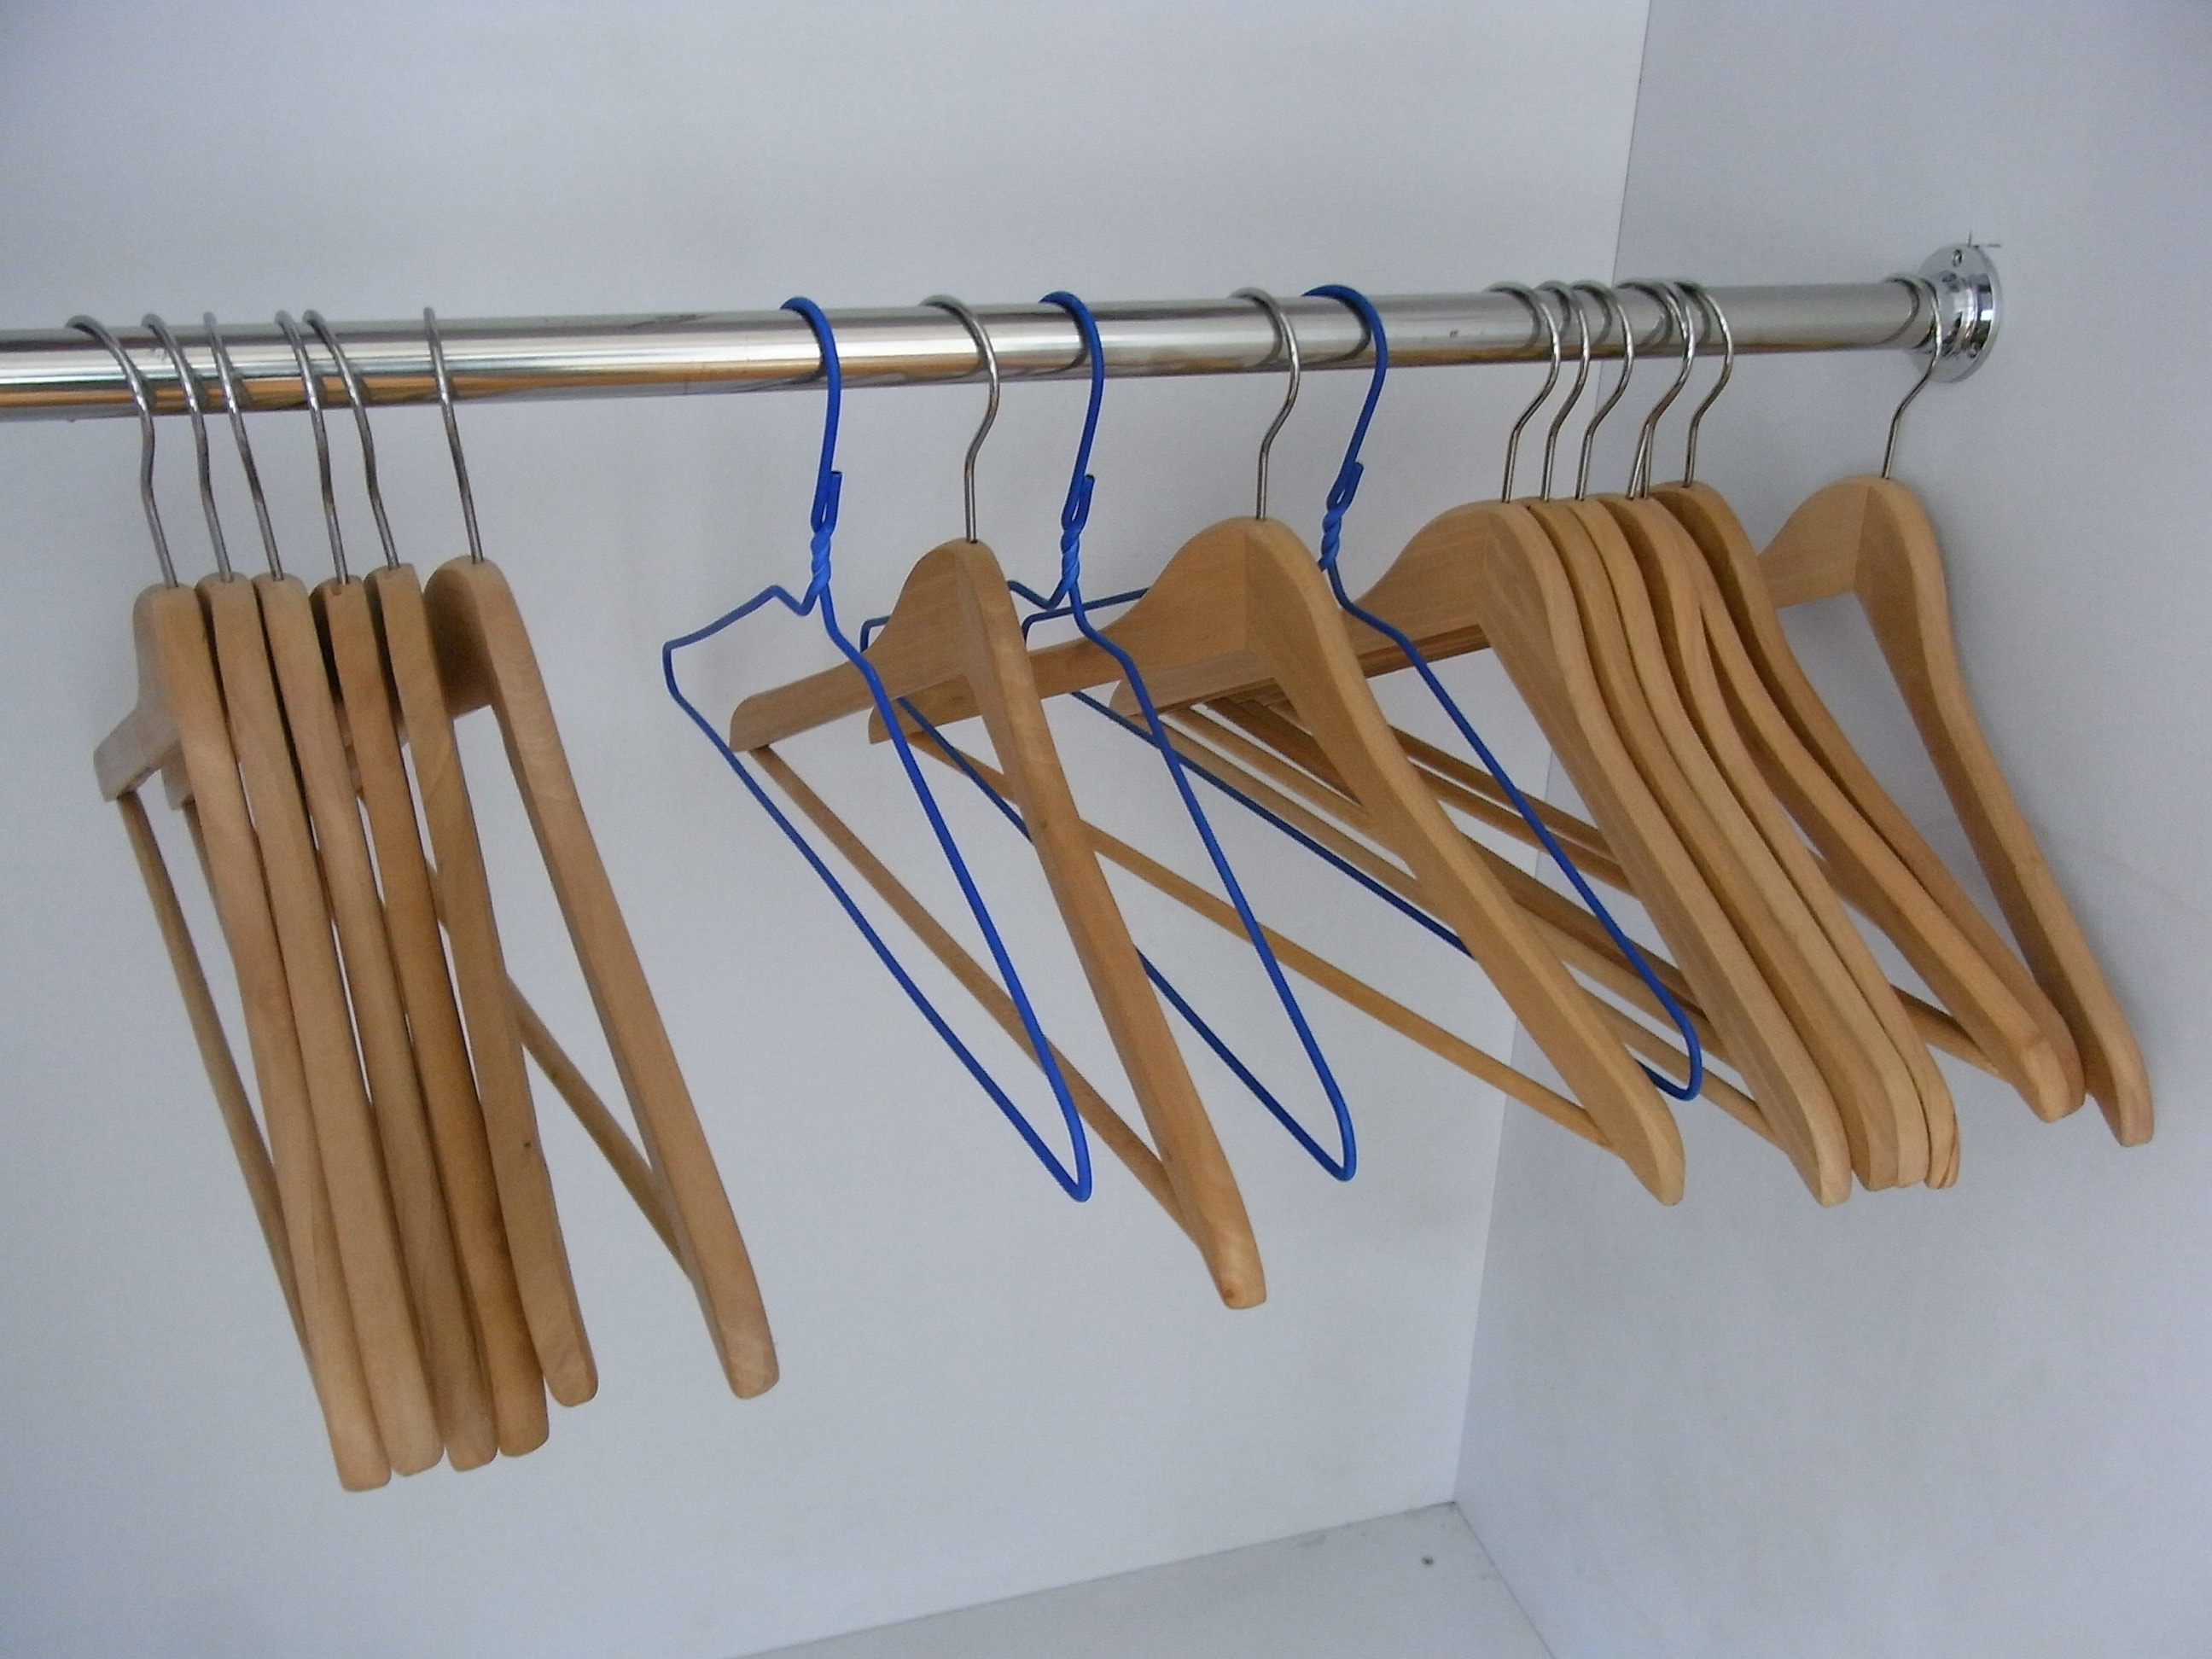 File Hk Sheung Wan ȡ�架 Clothes Hangers By Wood June 2012 Jpg Wikimedia Commons